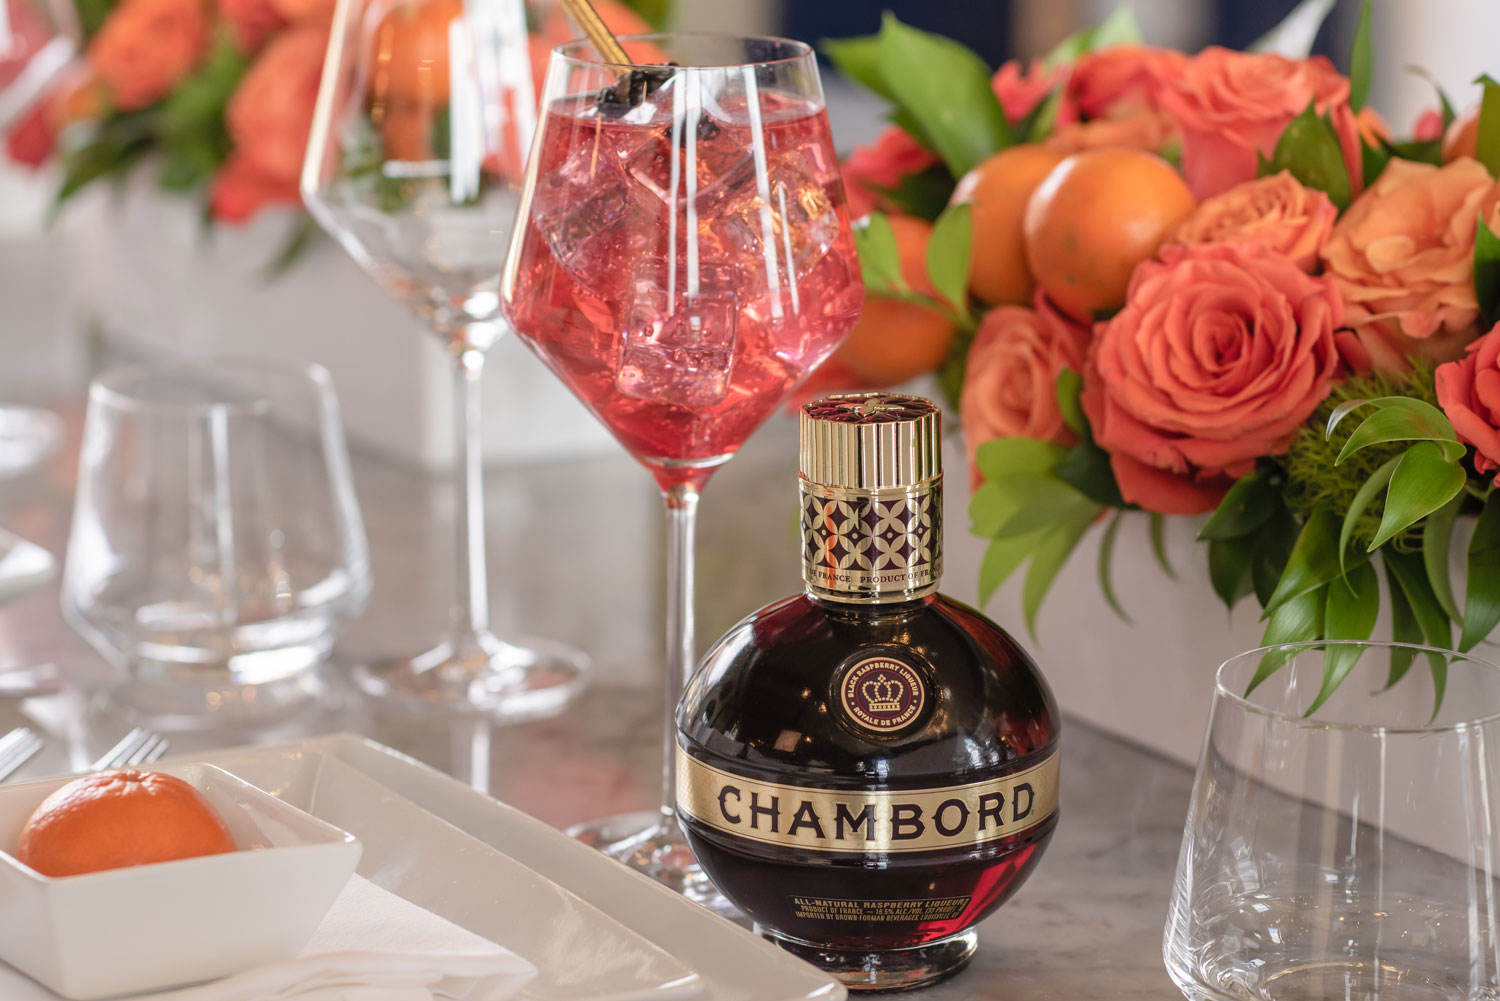 Chambord Spritz cocktail recipe with Chambord raspberry liqueur and white wine soda water